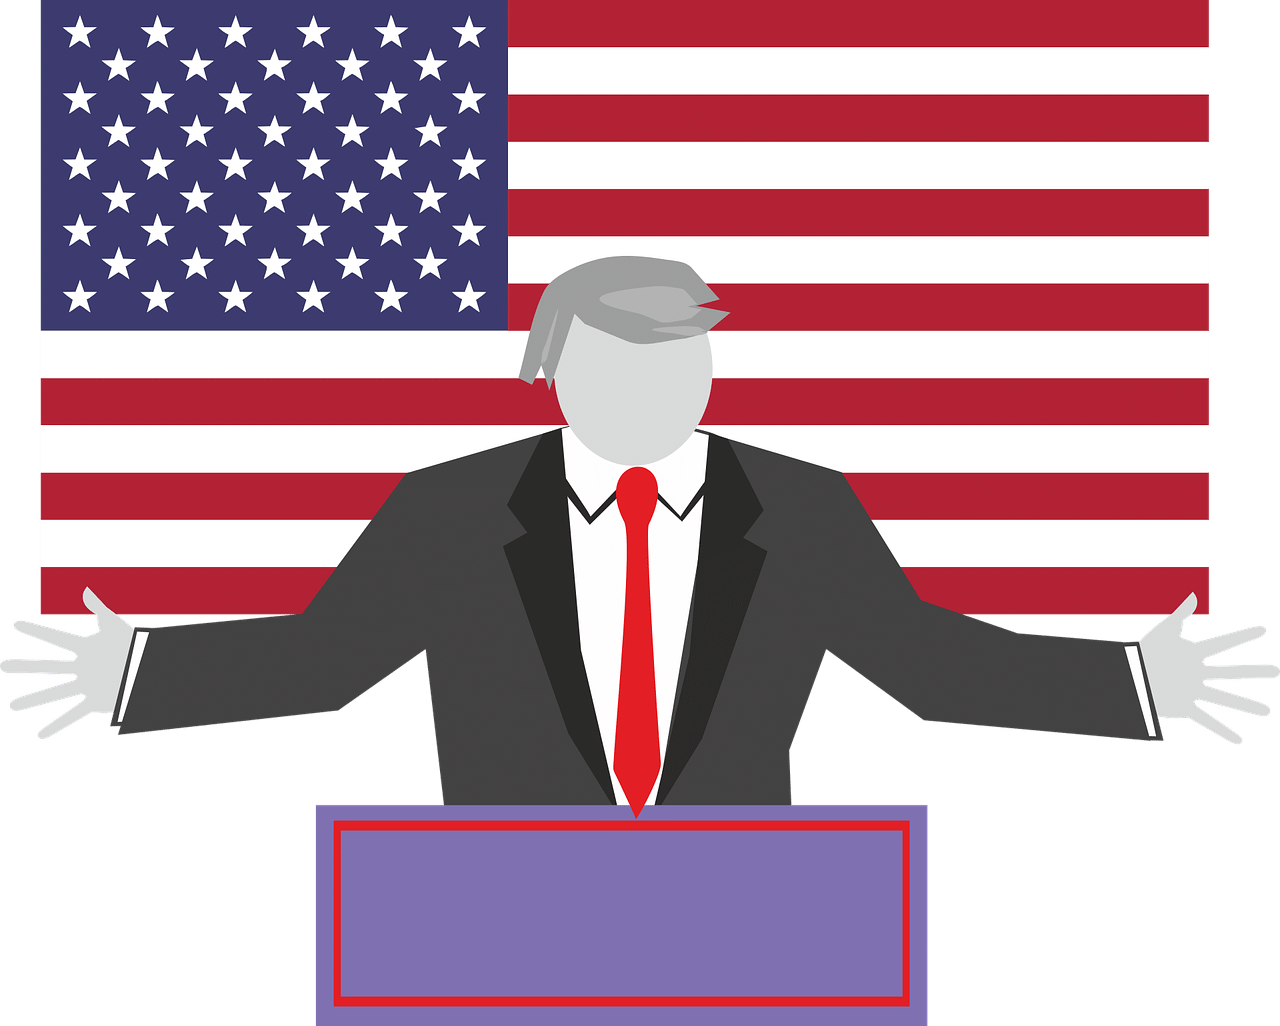 Visit white house and trump in washington clipart clipart black and white stock A STRANGE MOMENT DURING MR. TRUMP'S INAUGURATION SPEECH clipart black and white stock